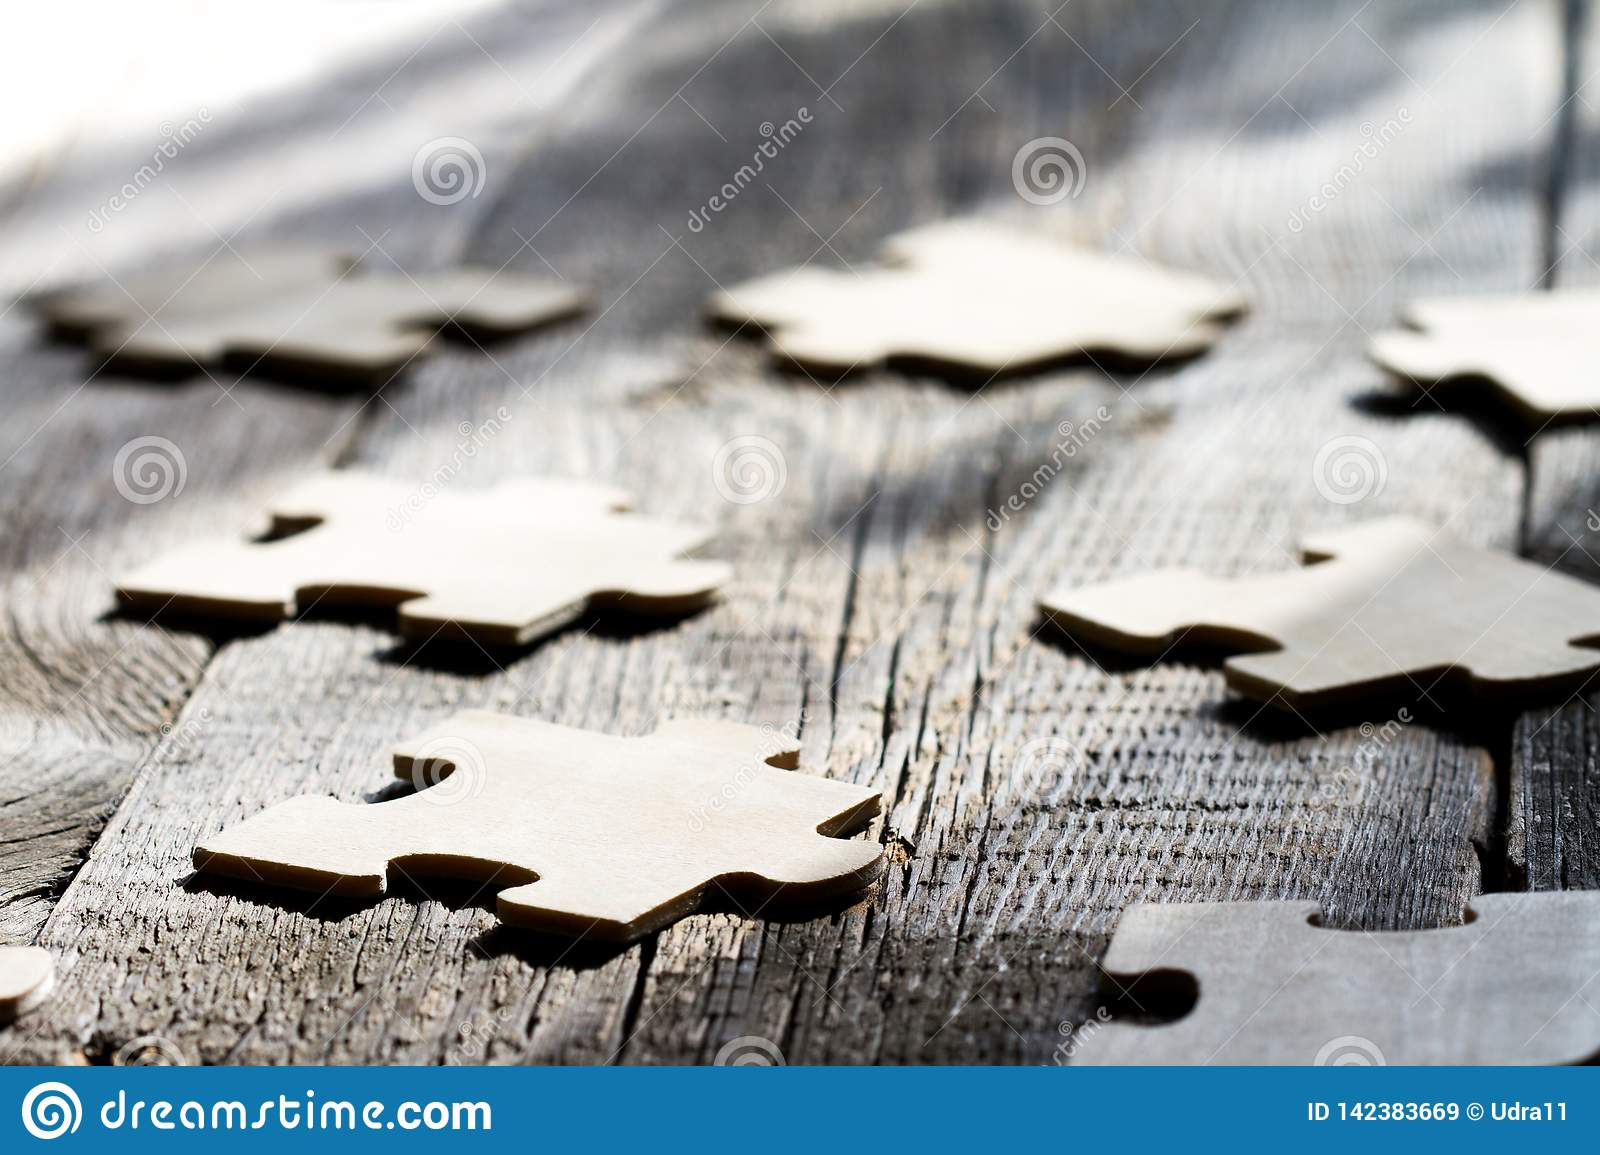 Teamwork in business abstract concept with puzzle on wooden board